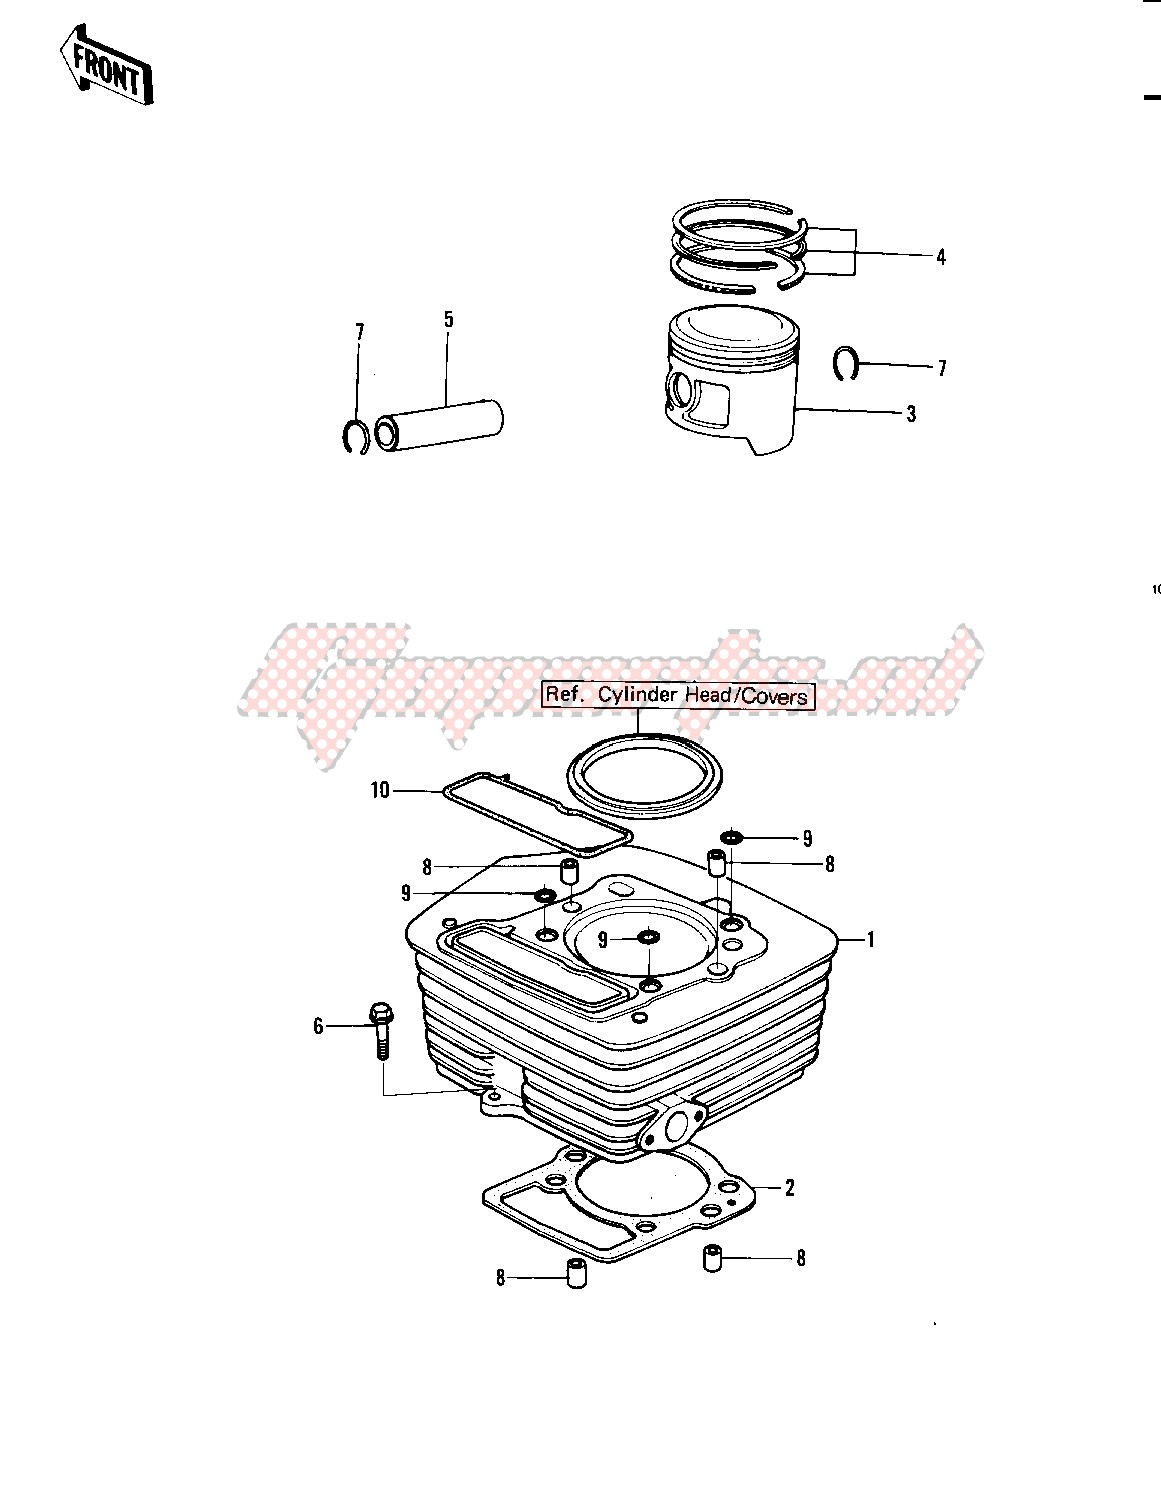 CYLINDER_PISTON -- 82 A1- - image